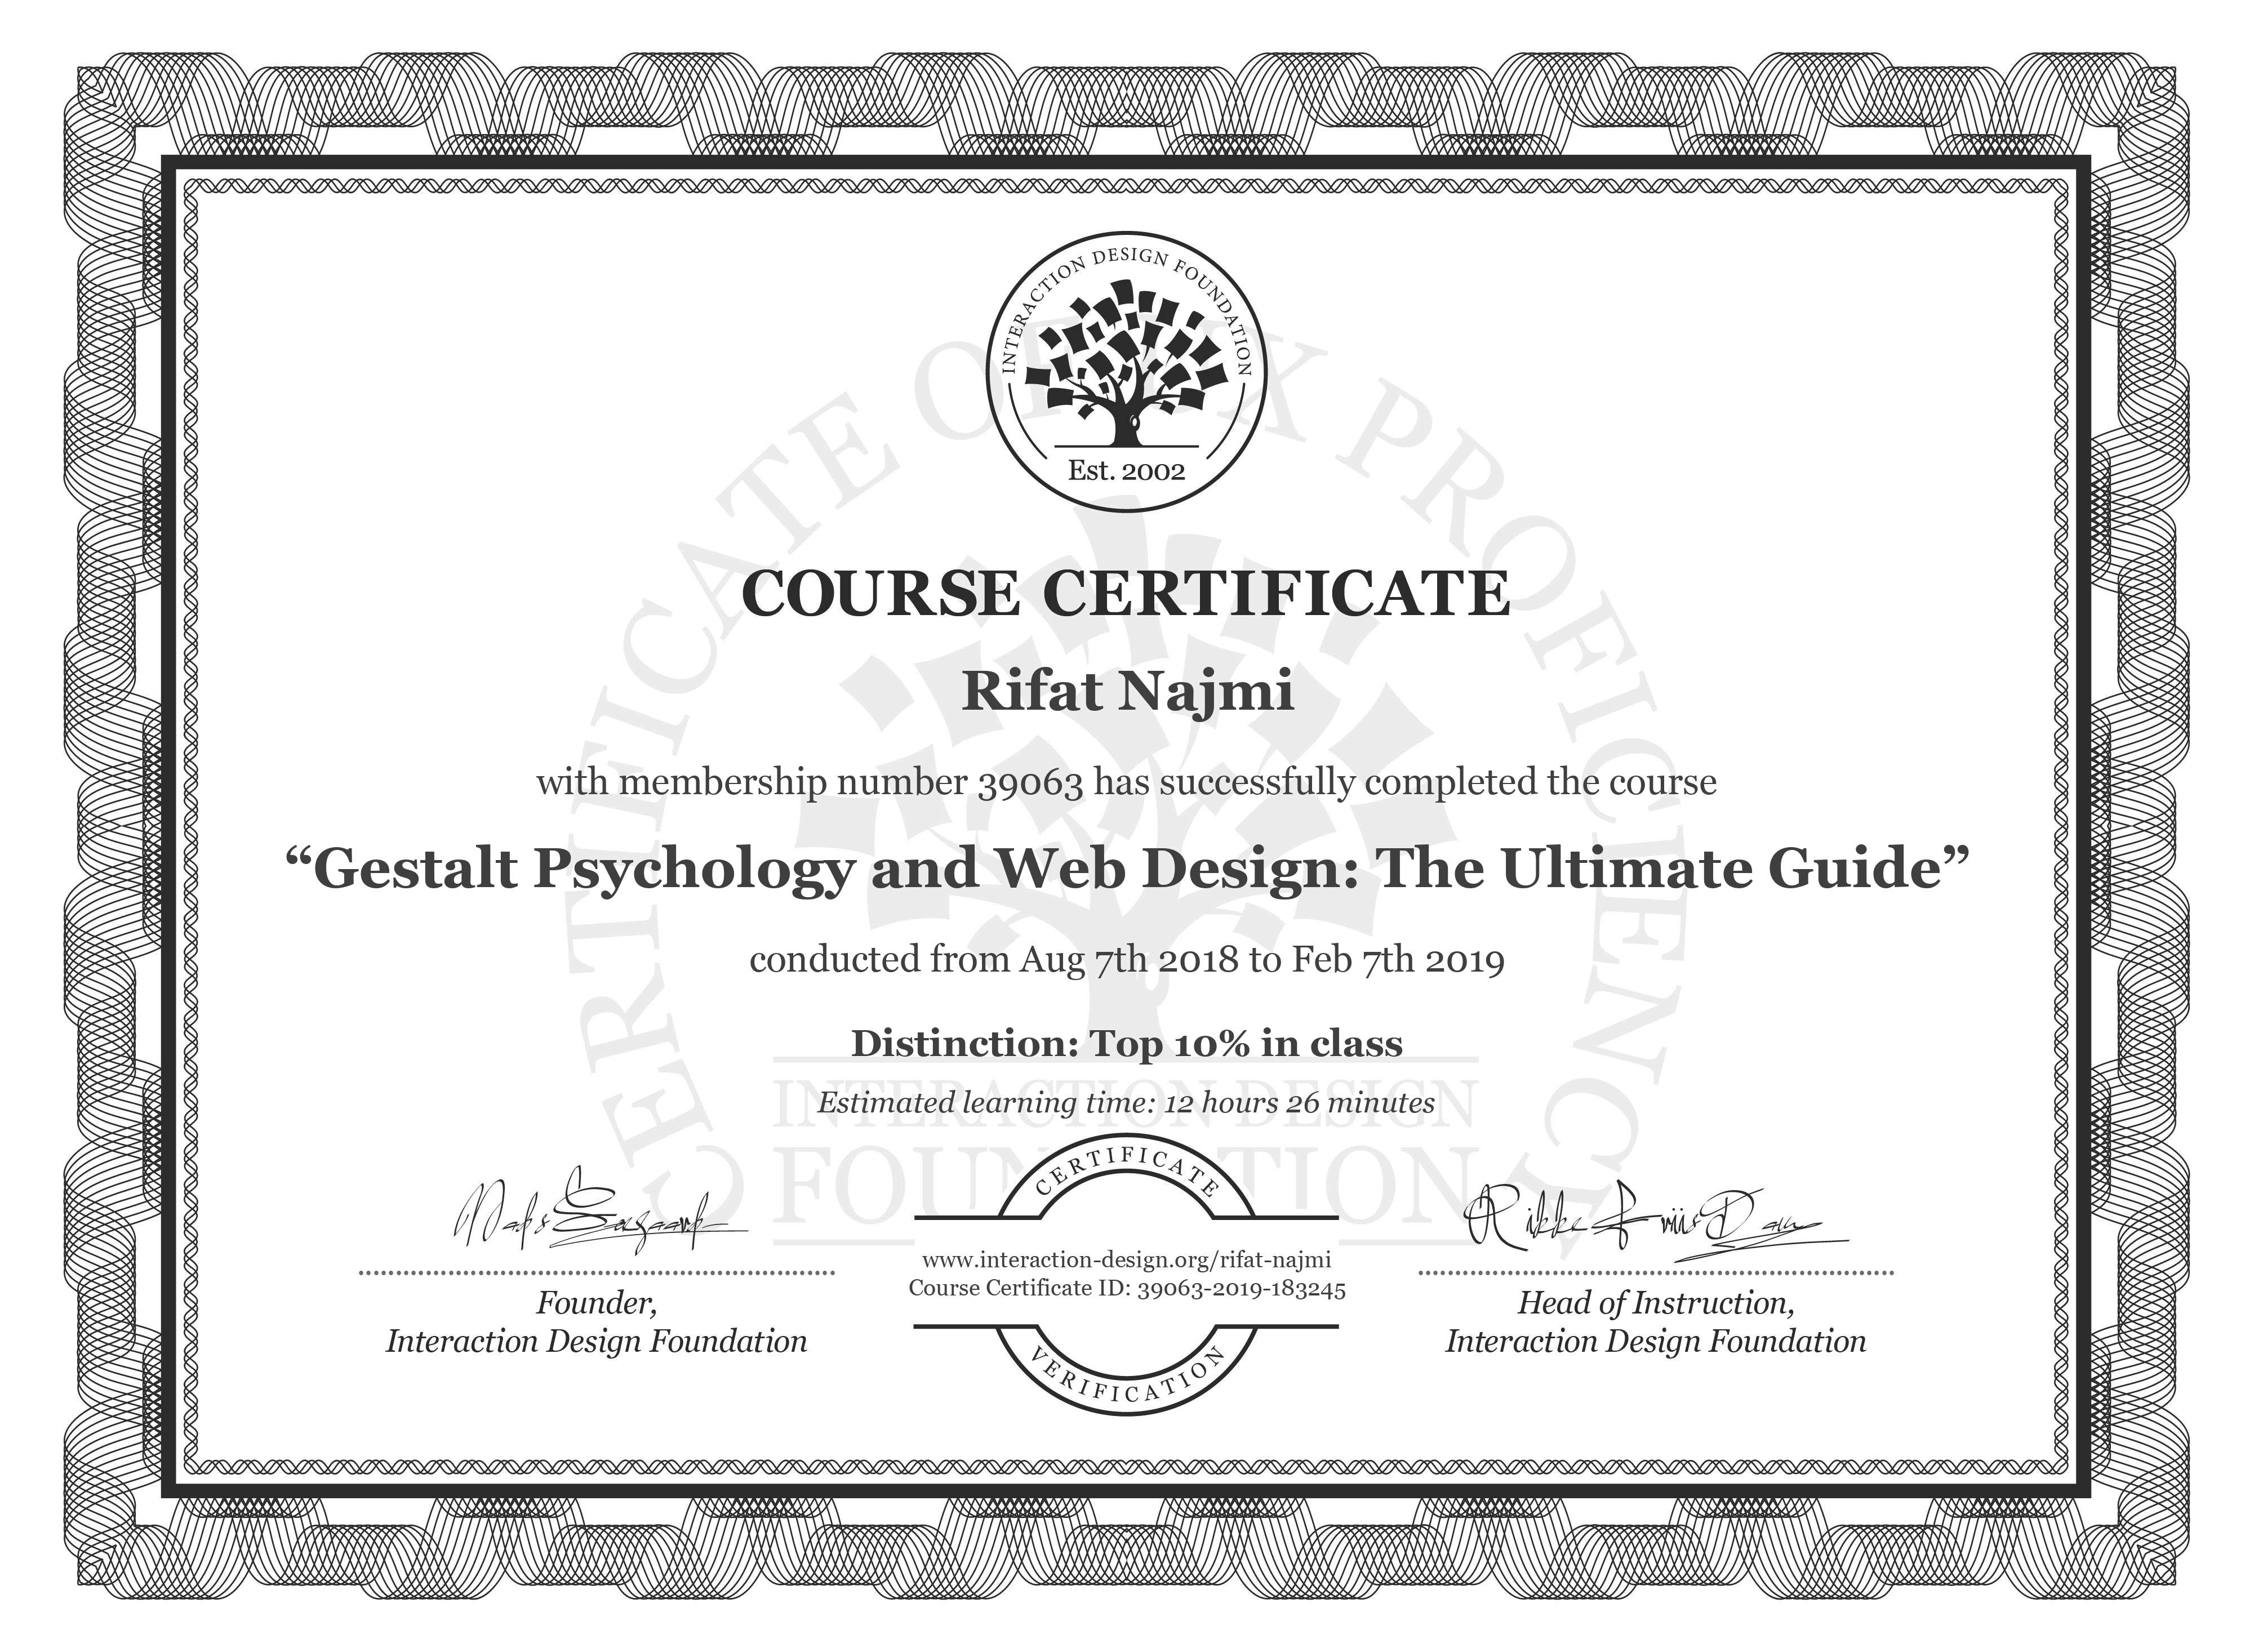 Rifat Najmi's Course Certificate: Gestalt Psychology and Web Design: The Ultimate Guide